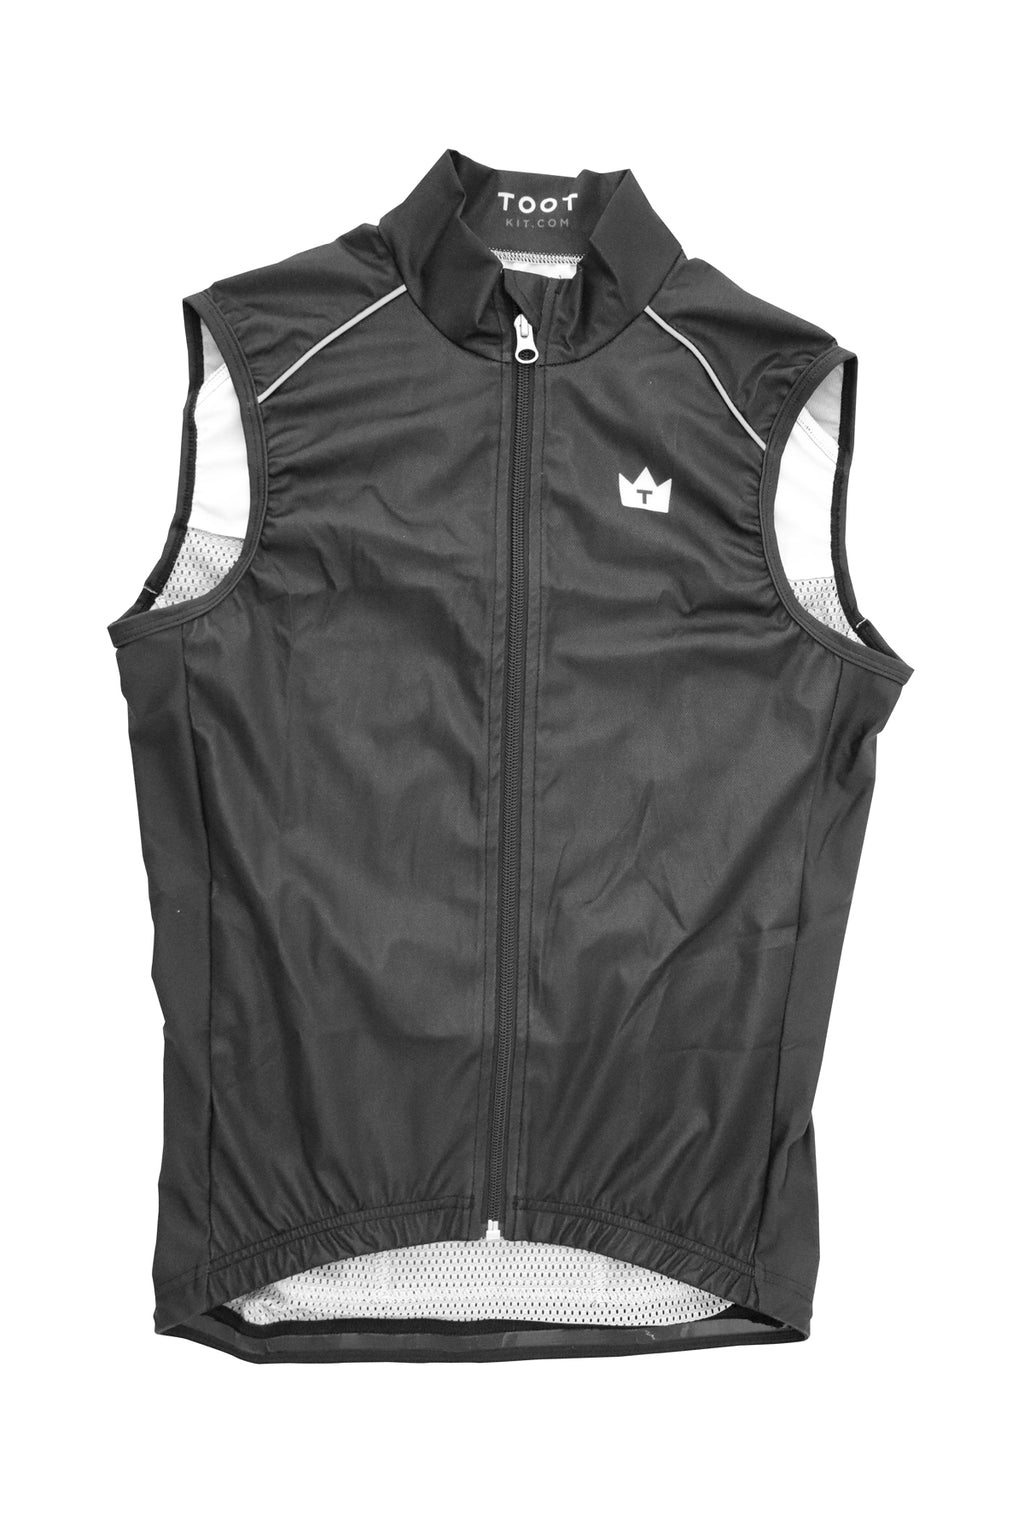 BLACK - Staple Gilet Unisex